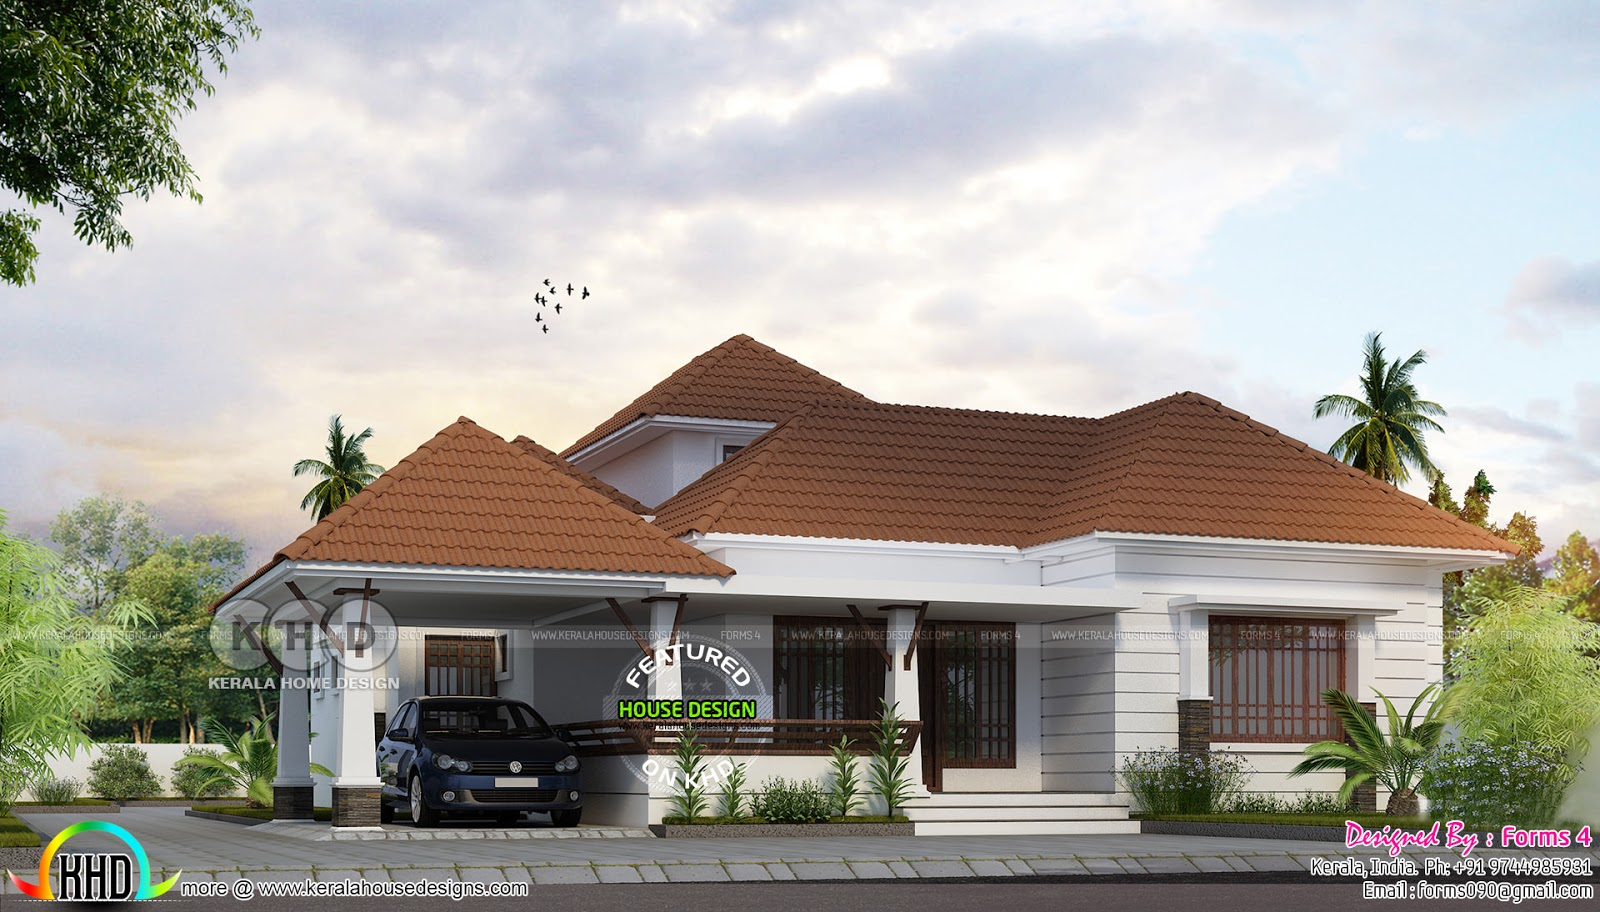 single-floor-house Kerala Home Design With Long Veranda on modern mountain home designs, enclosed pergola designs, best energy efficient home designs, homes with flat roof designs, homes with carport designs, front verandah designs, mobile home designs, spanish home designs,